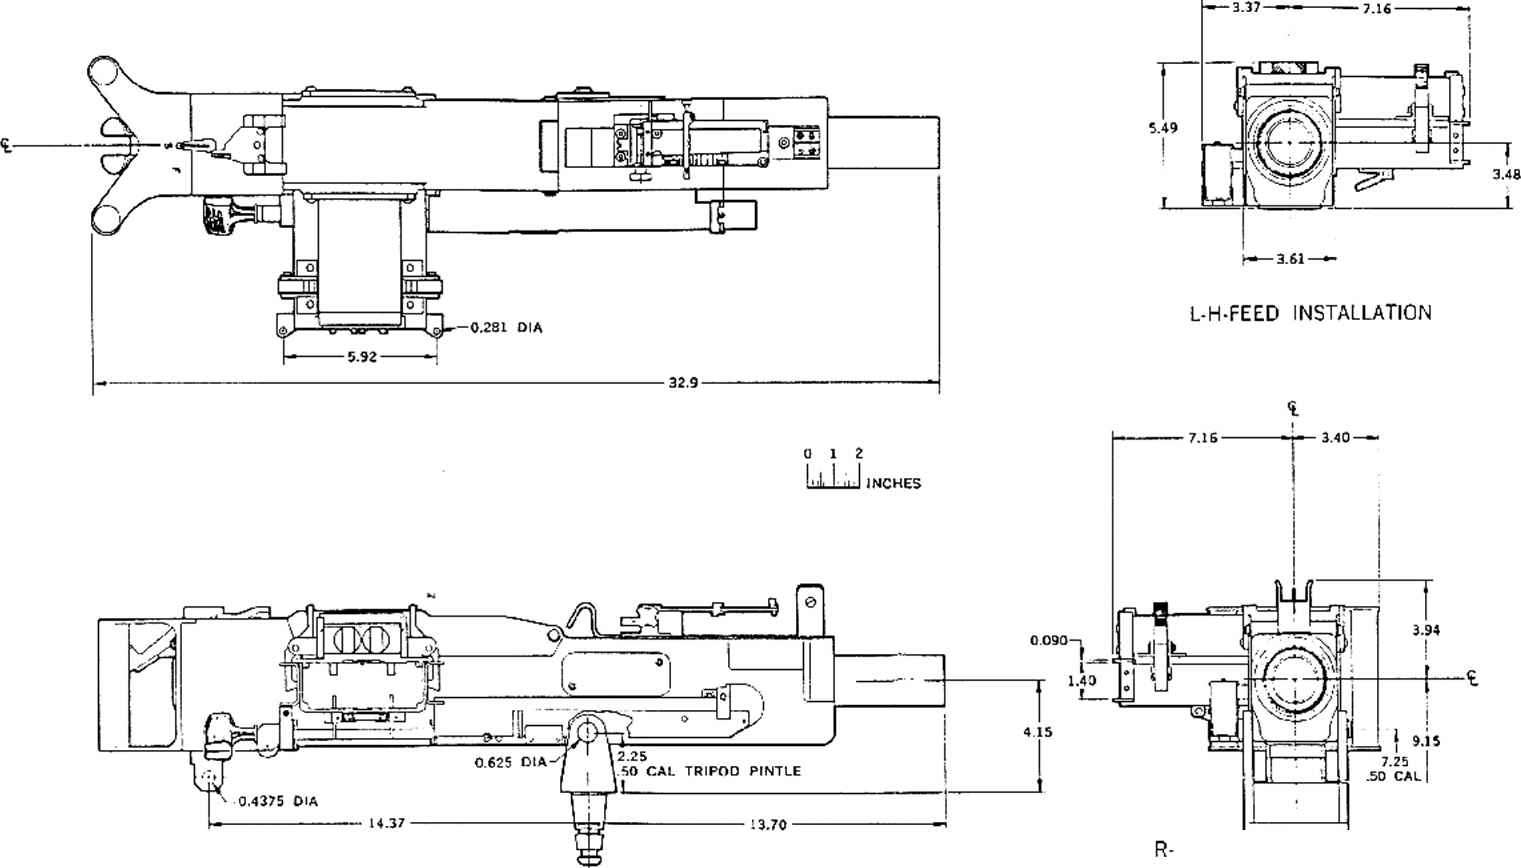 50 Caliber Mg Exploded Diagram Sample Wiring Fotos 1911 A1 Parts Http Www Bevfitchett Us Ruger P Series Hughes Tool Company Presently Mcdonnell Douglas Machine Gun V5 Rh